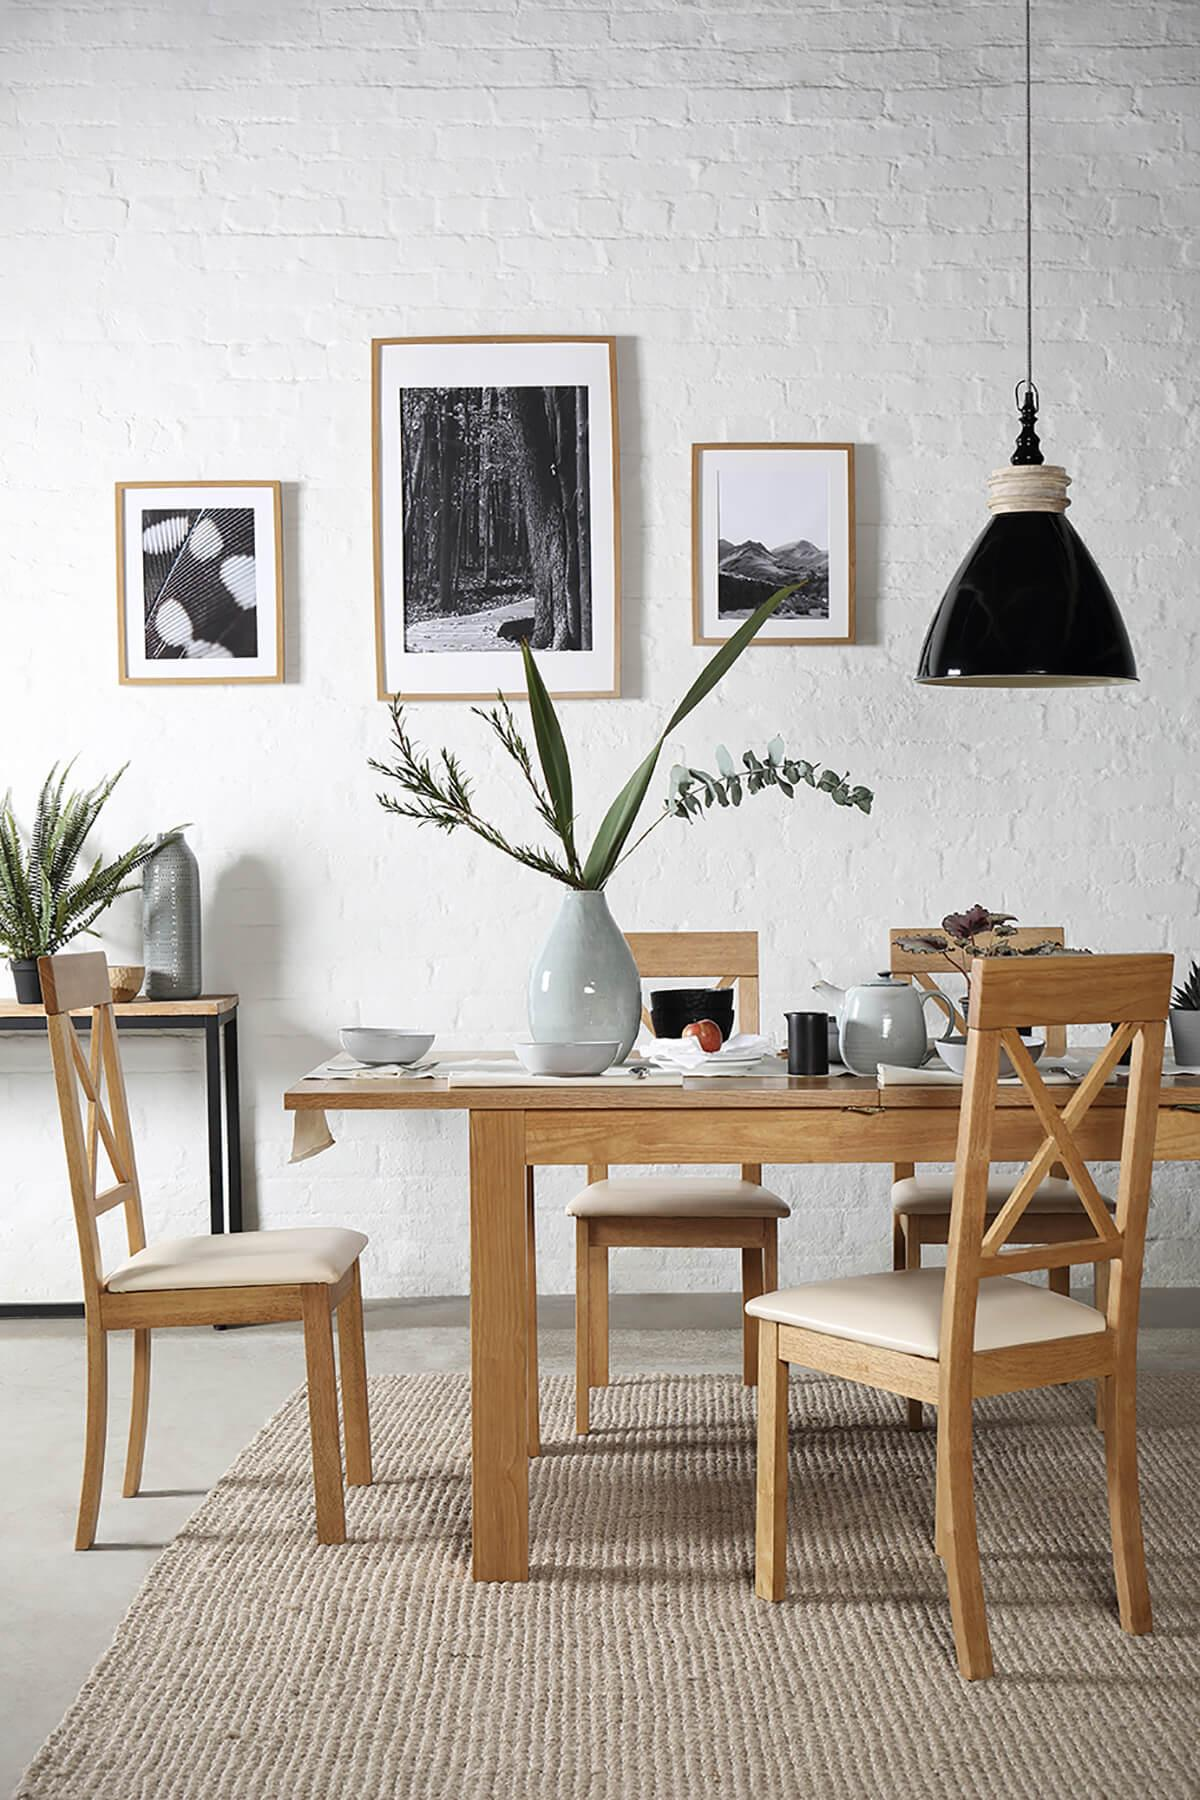 Hamilton 120-170cm Oak Extending Dining Table - with 6 Kendal Chairs (Brown Seat Pad)